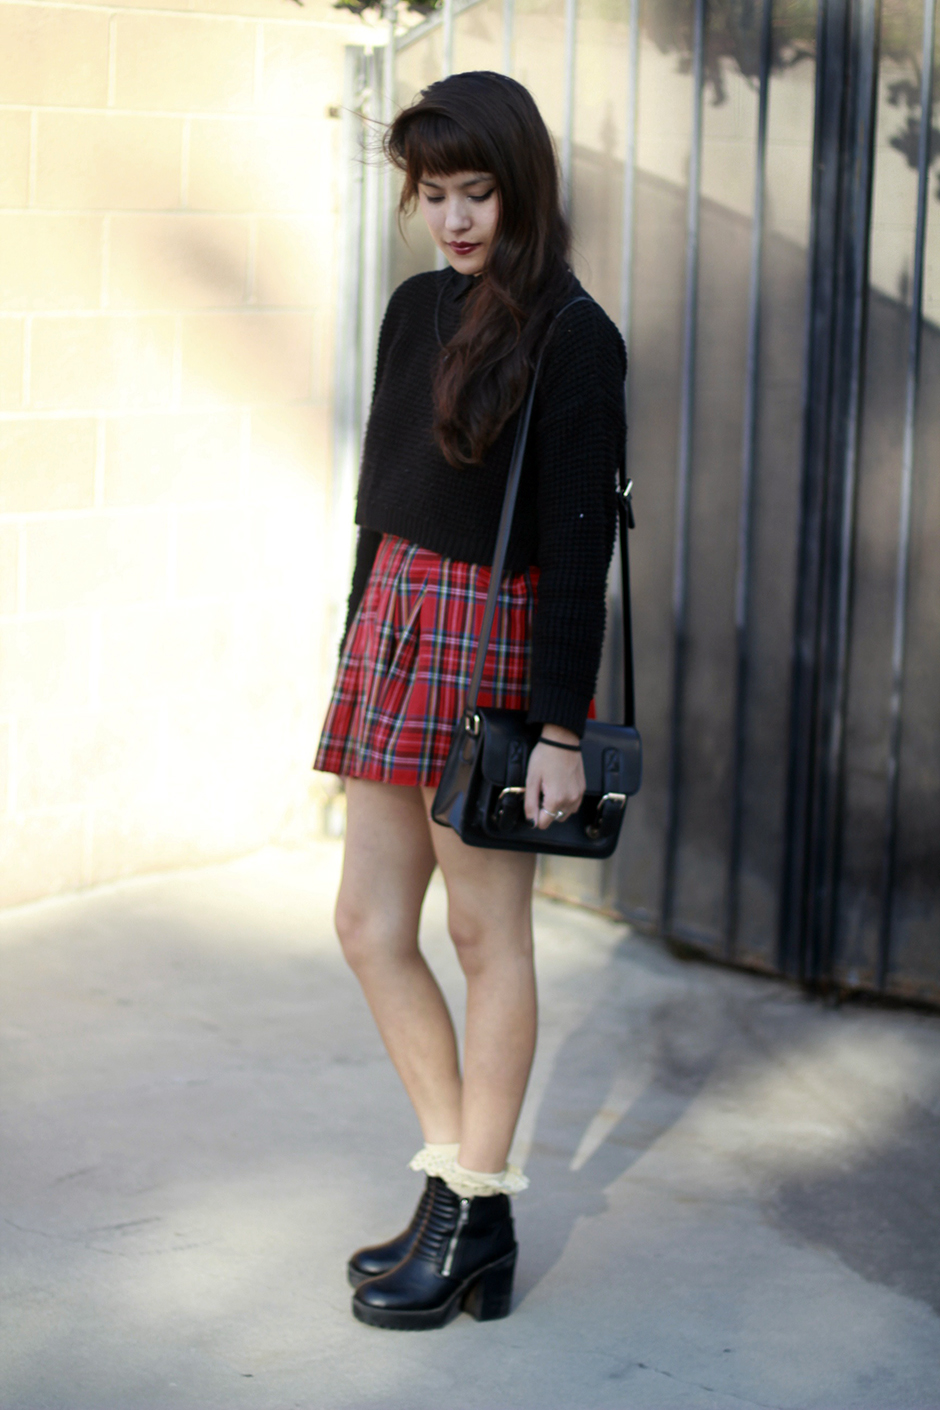 Shoptarte Tarte Vintage tartan plaid pleated skirt, Topshop Cropped waffle knit sweater, moto boots with frilly socks